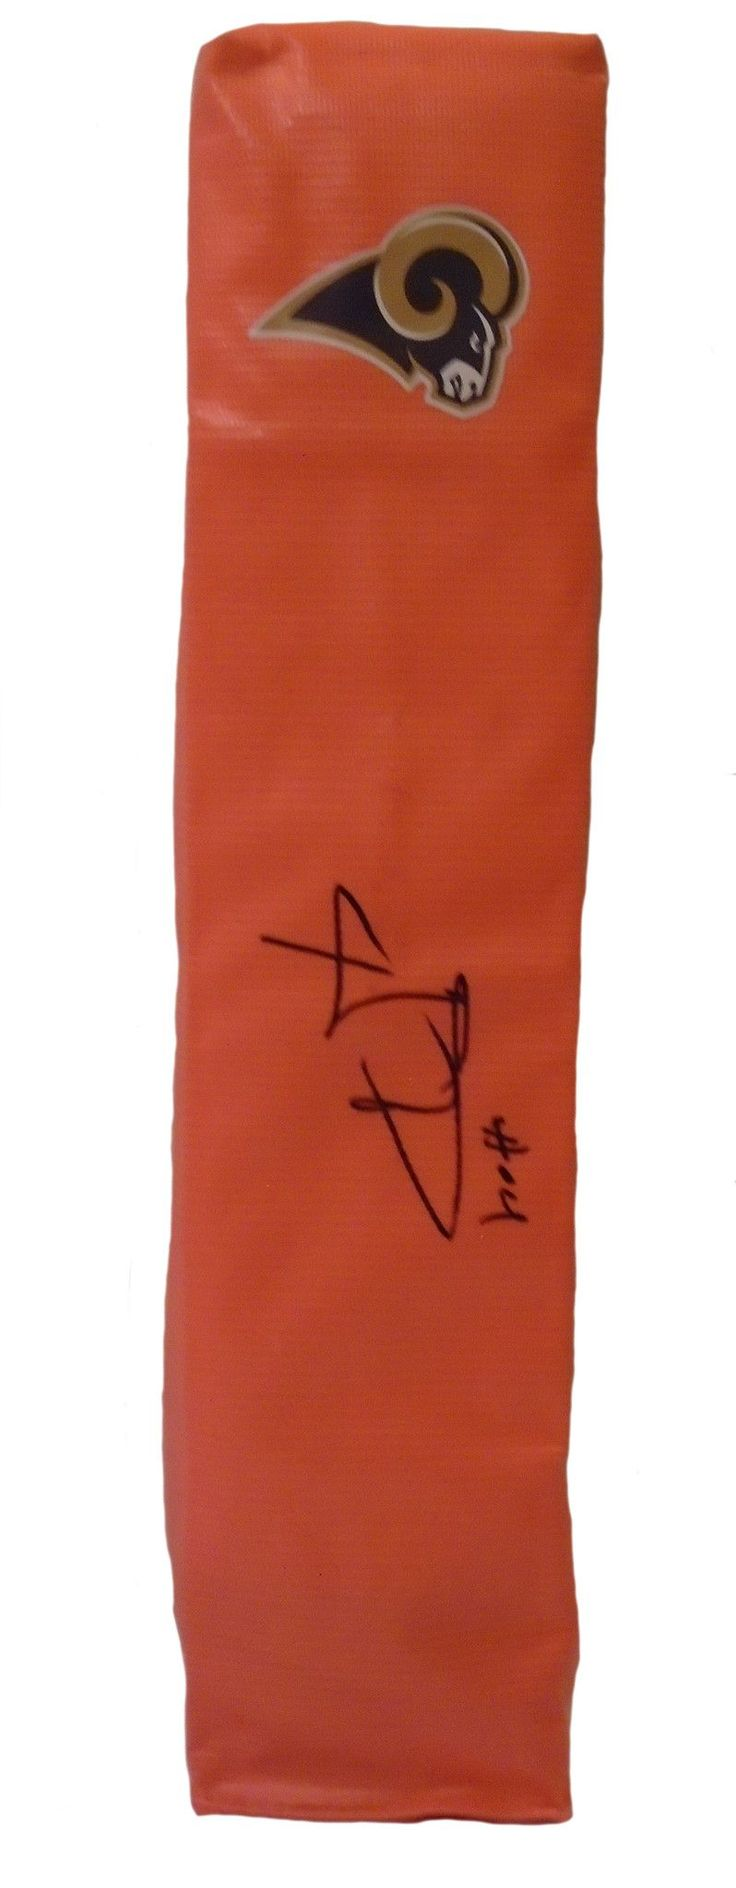 Aaron Donald signed Los Angeles Rams full size football touchdown end zone pylon w/ proof photo.  Proof photo of Aaron signing will be included with your purchase along with a COA issued from Southwestconnection-Memorabilia, guaranteeing the item to pass authentication services from PSA/DNA or JSA. Free USPS shipping. www.AutographedwithProof.com is your one stop for autographed collectibles from LA sports teams. Check back with us often, as we are always obtaining new items.